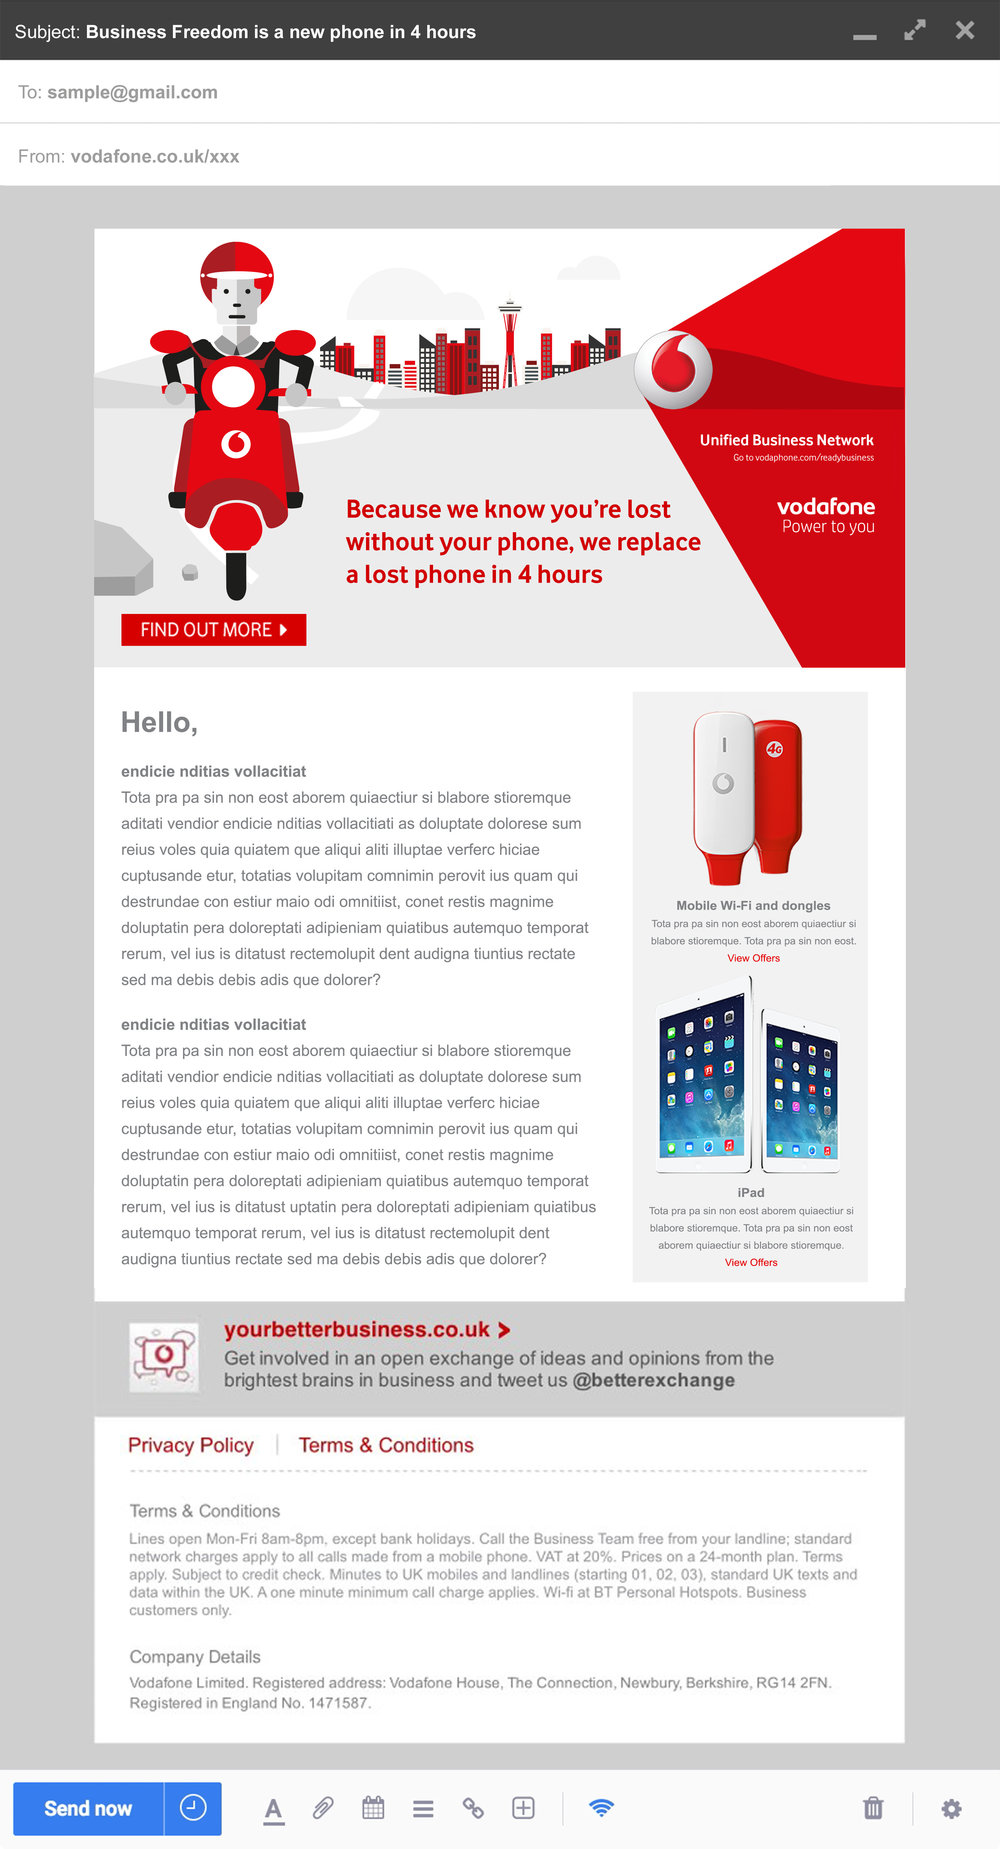 vodafone email template_scooter.jpg